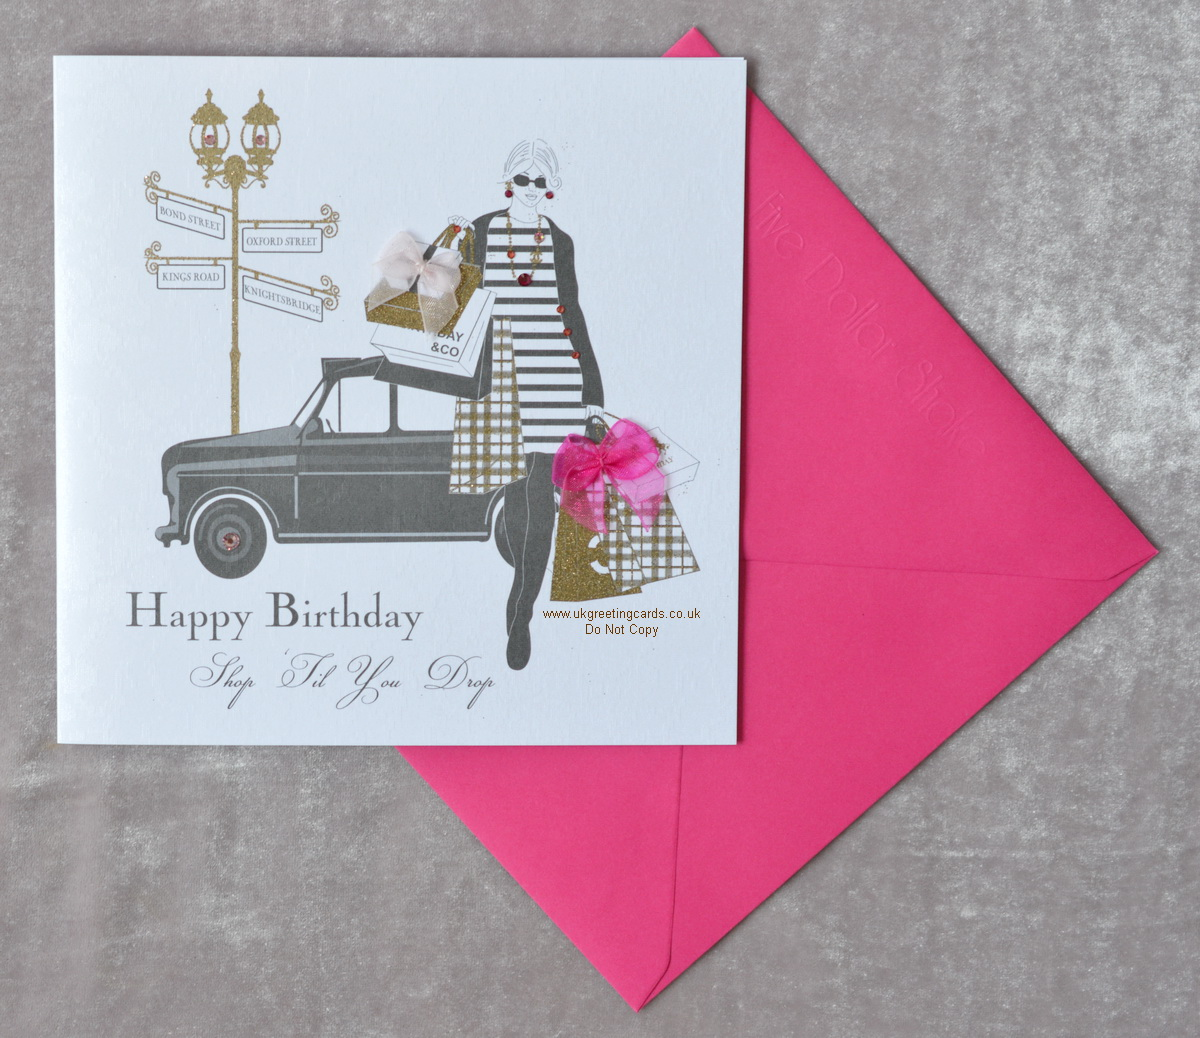 UK Greeting Cards – Where Can I Buy Birthday Cards